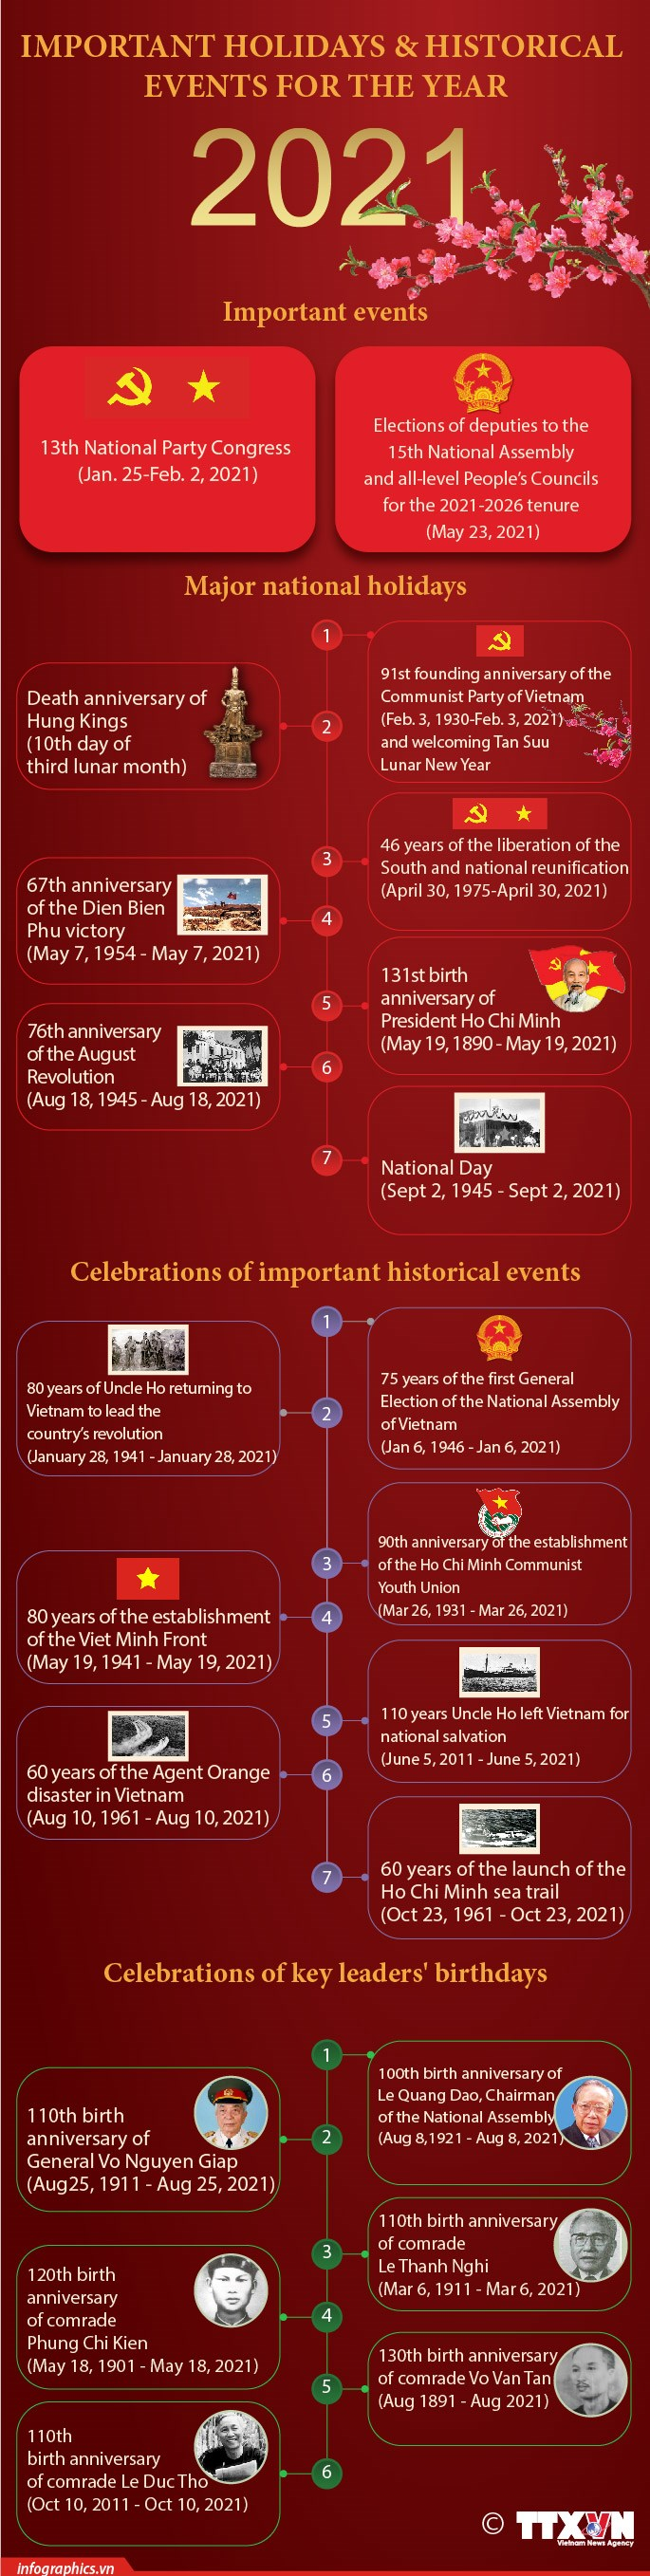 Important holidays and historical events for 2021 hinh anh 1